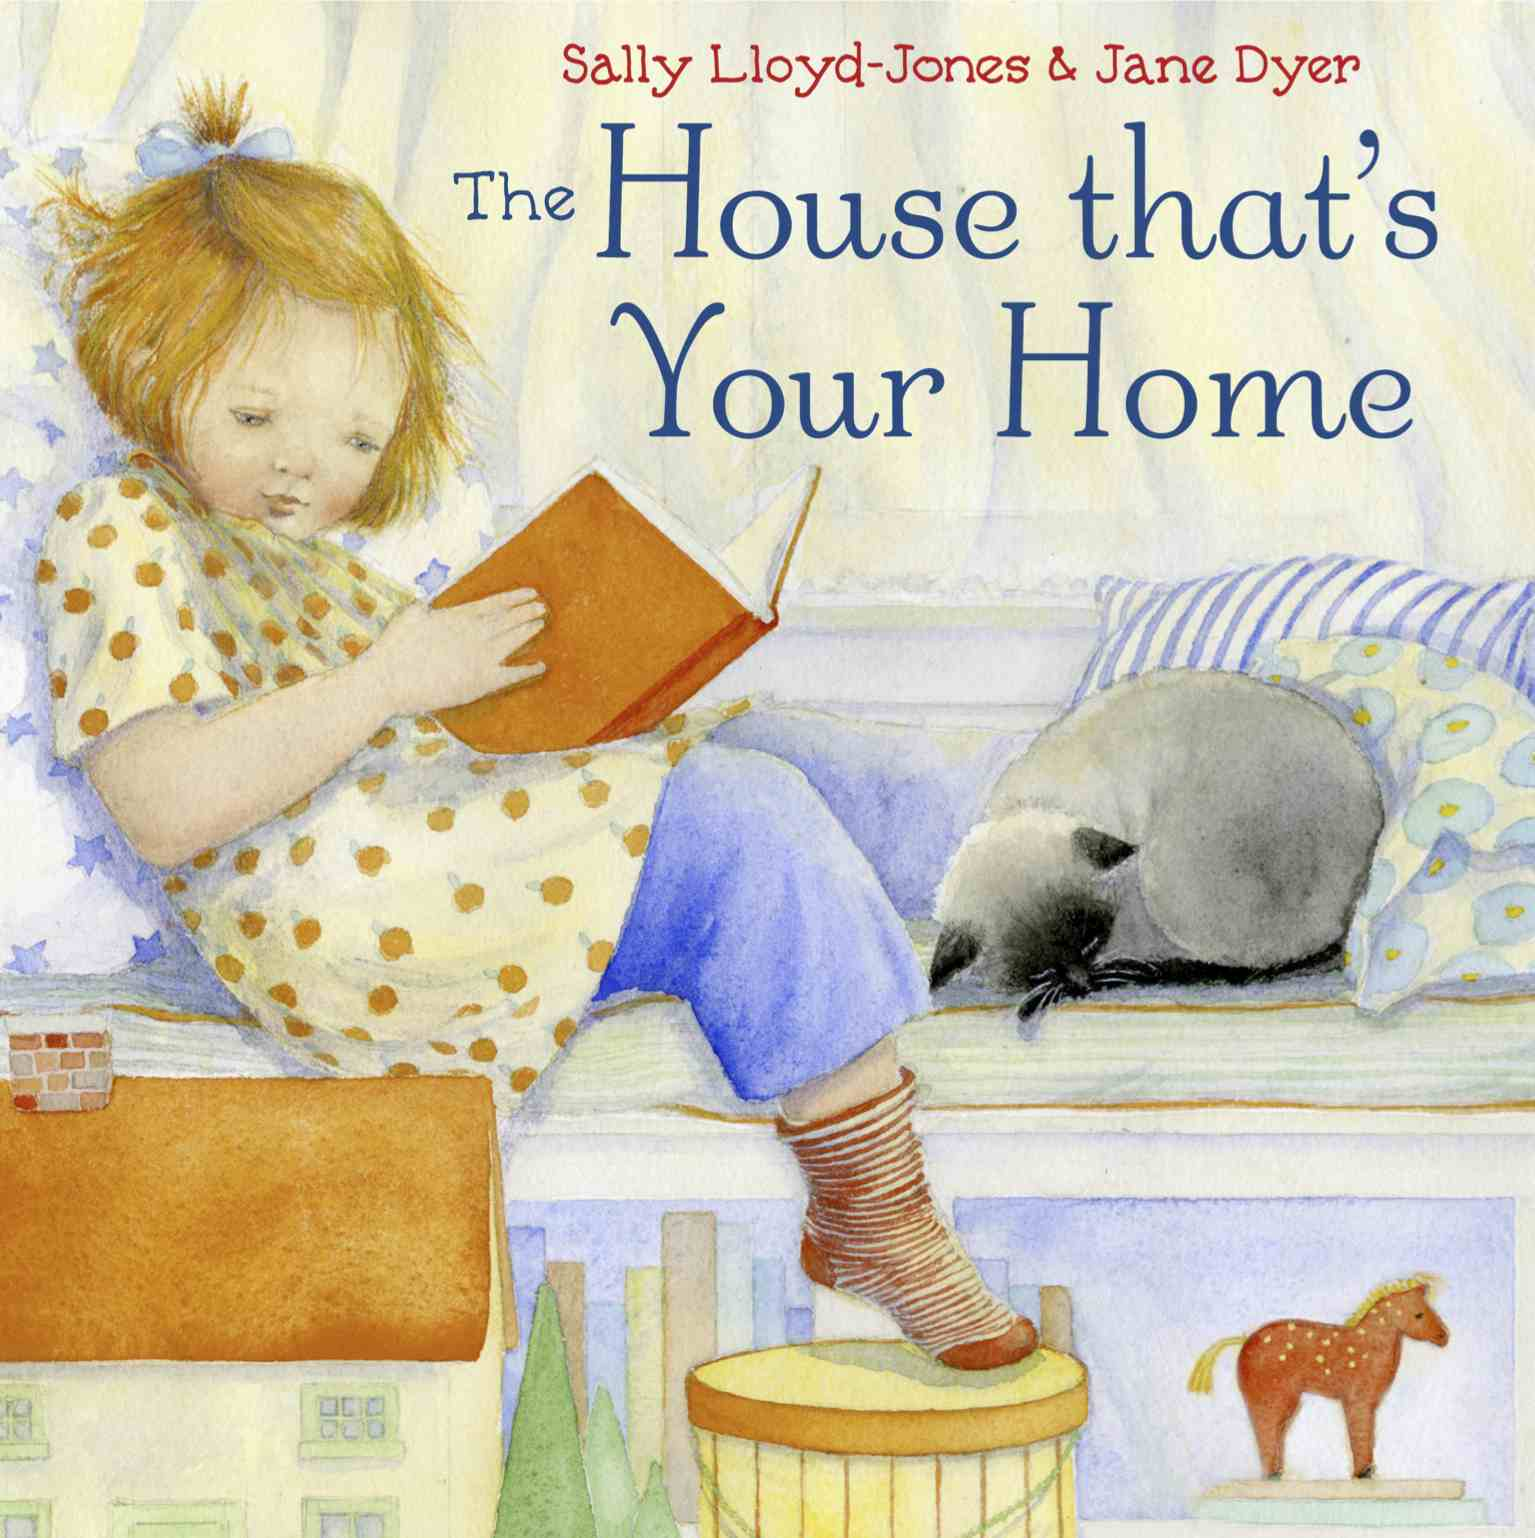 Sunday Story Time with Sally Lloyd-Jones (author of The House That's Your Home)